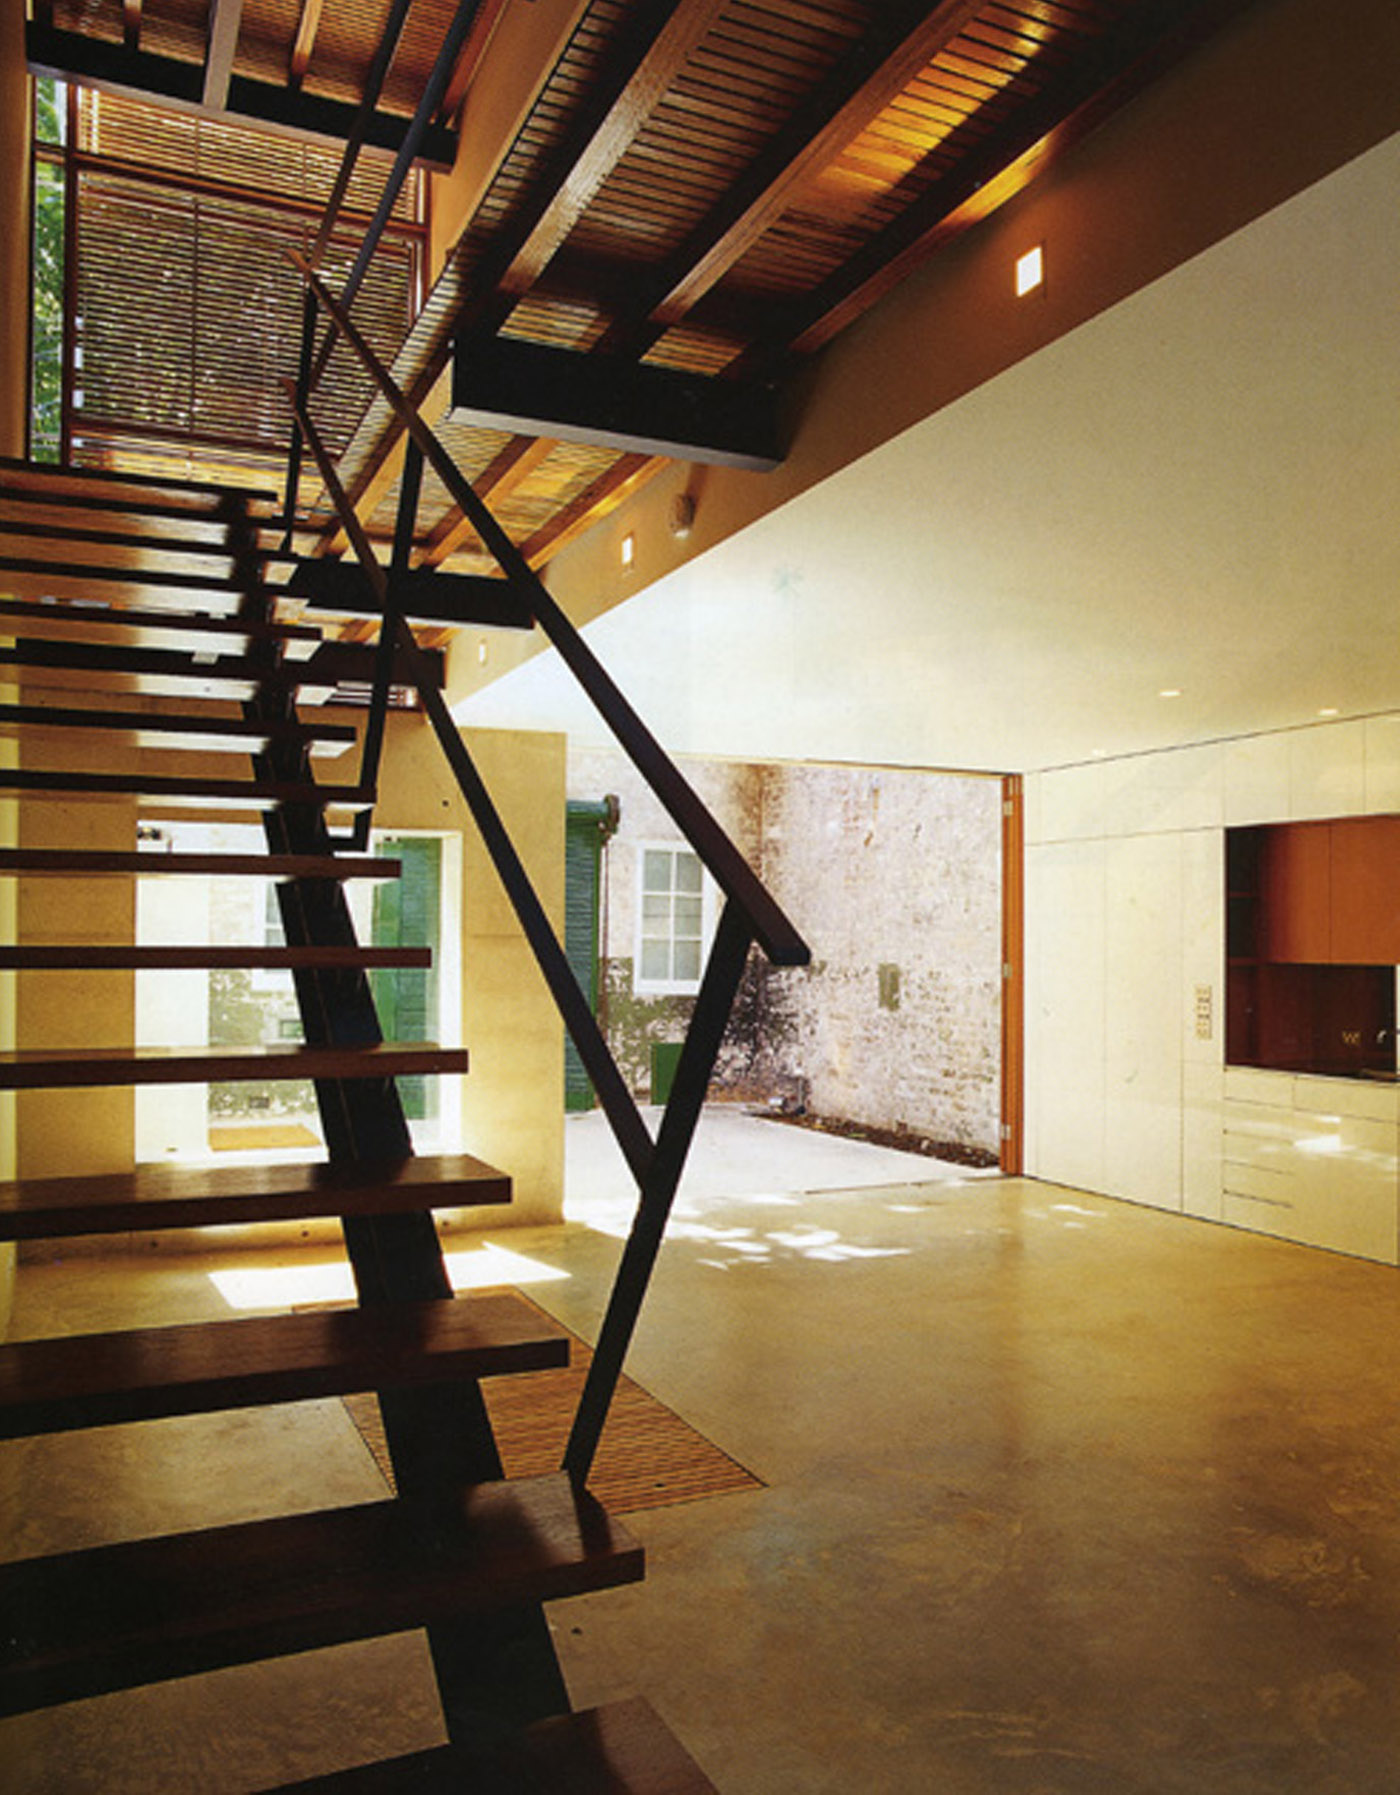 Substation House by award winning residential architecture firm Sam Crawford Architects. View of light open stairs